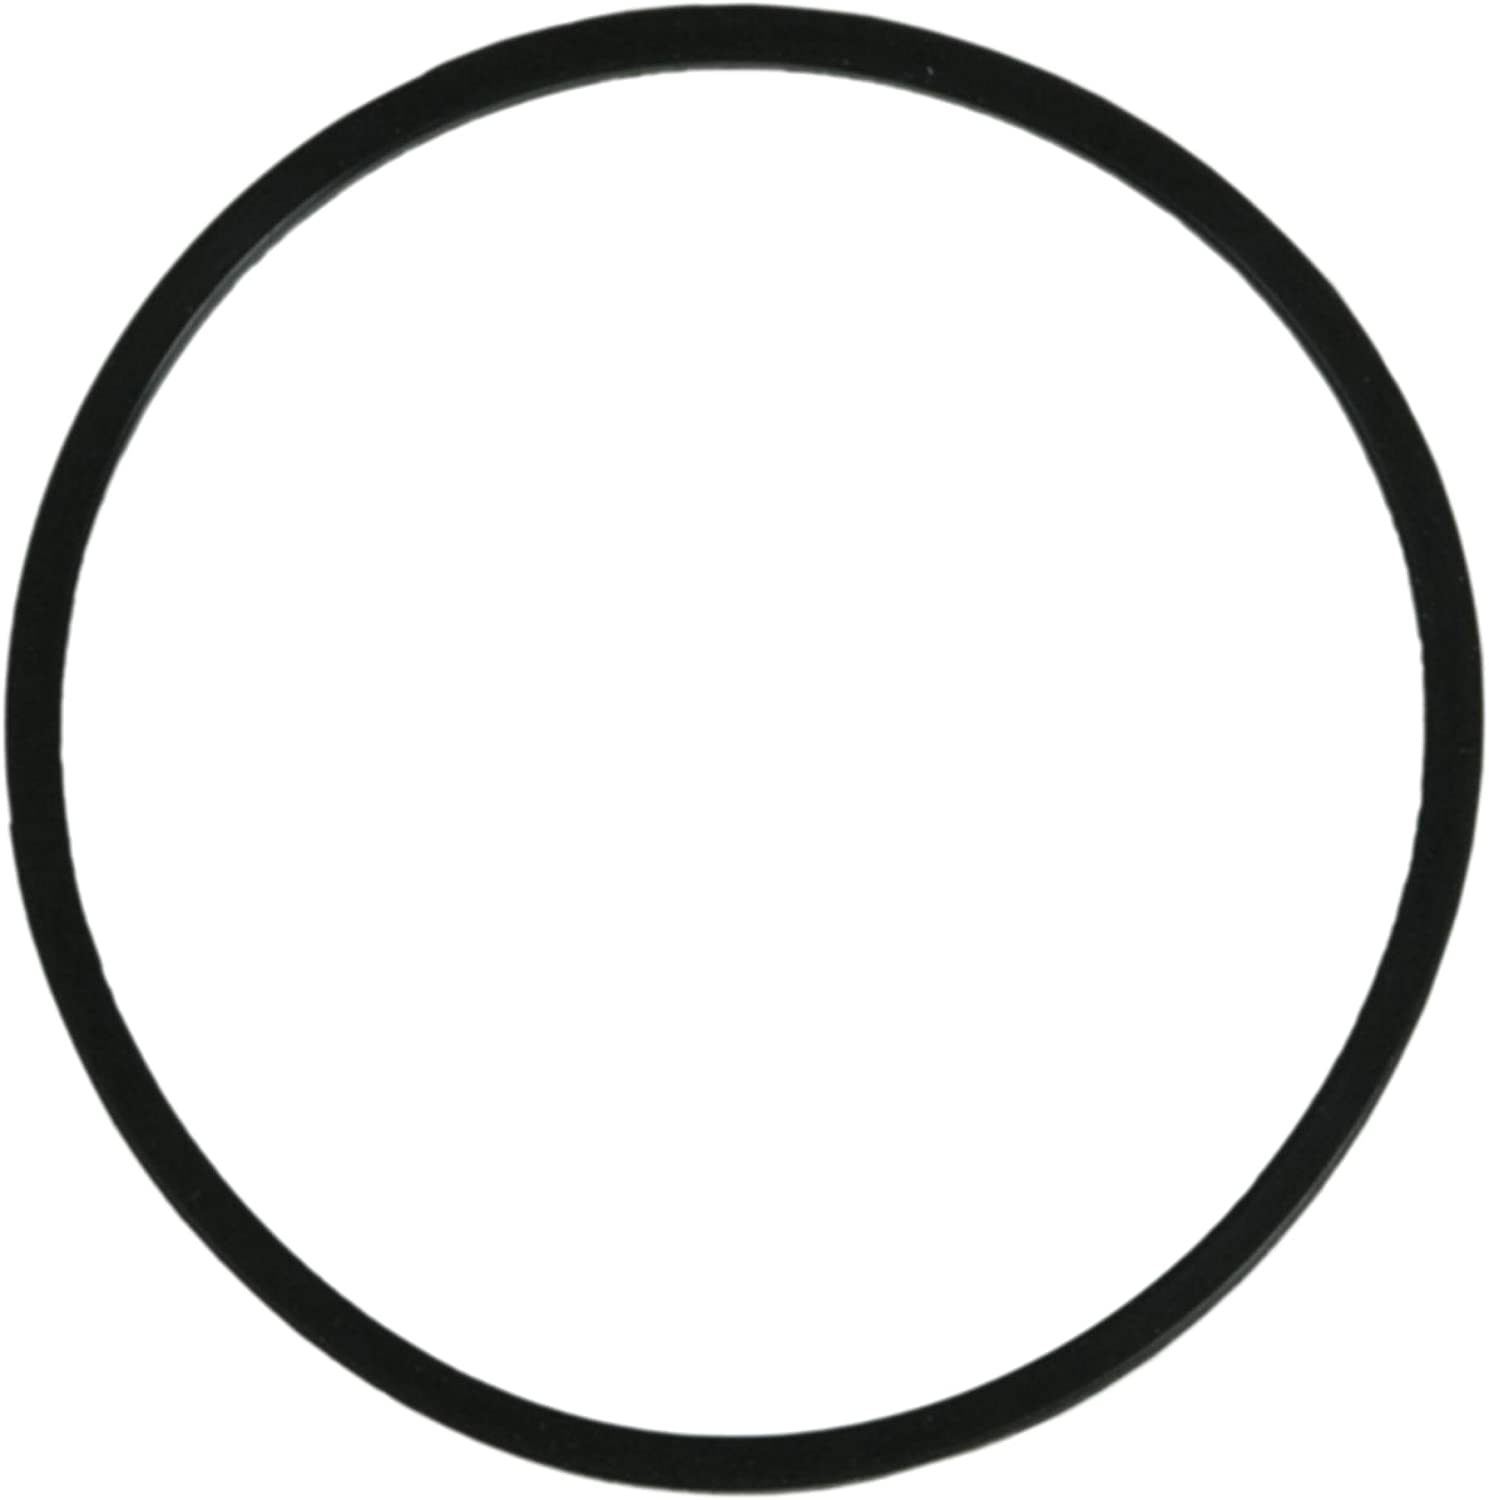 Fel-Pro 61736 Throttle Gasket OFFicial mail order 2021 spring and summer new Body